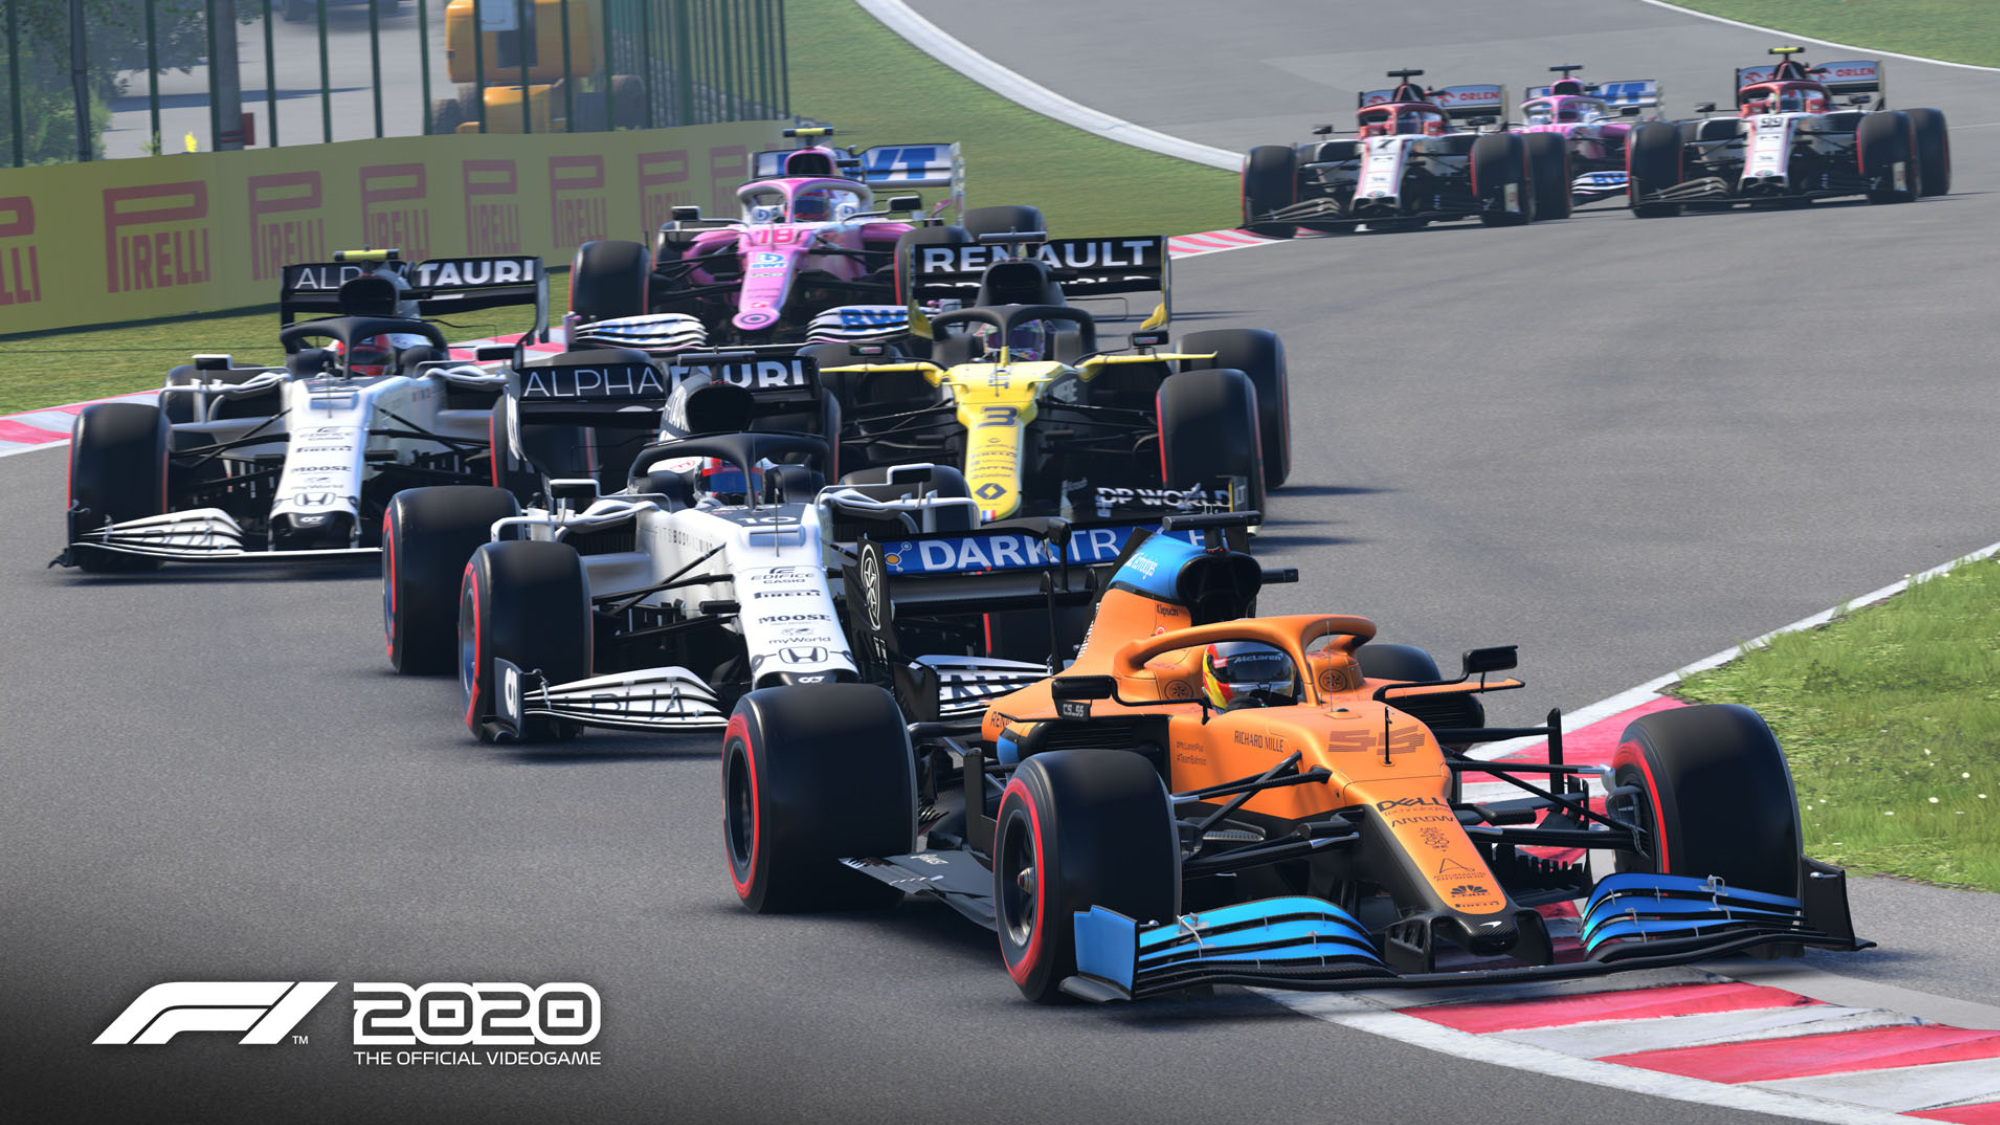 F1 2020 game: review